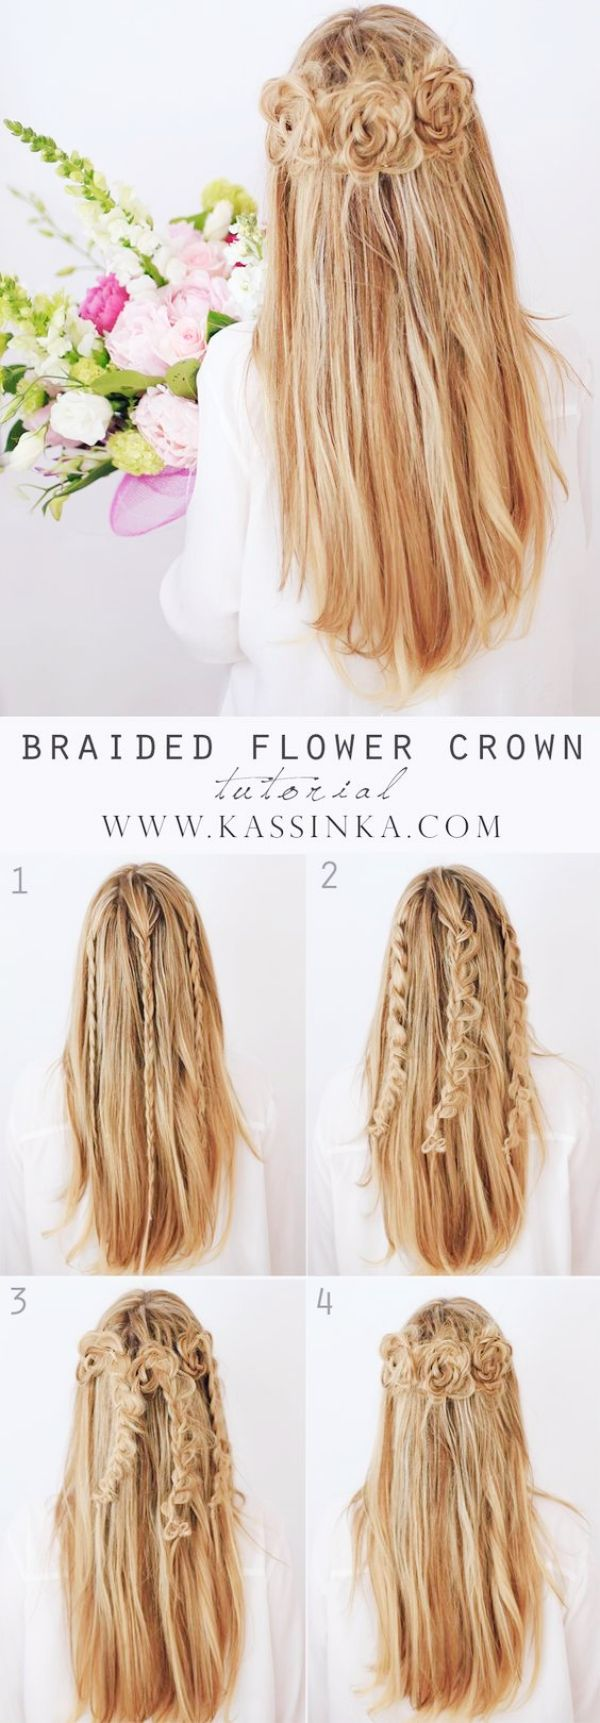 35 Greek Goddess Half-up Half-Down Hairstyles | Dance hair and Hair ...